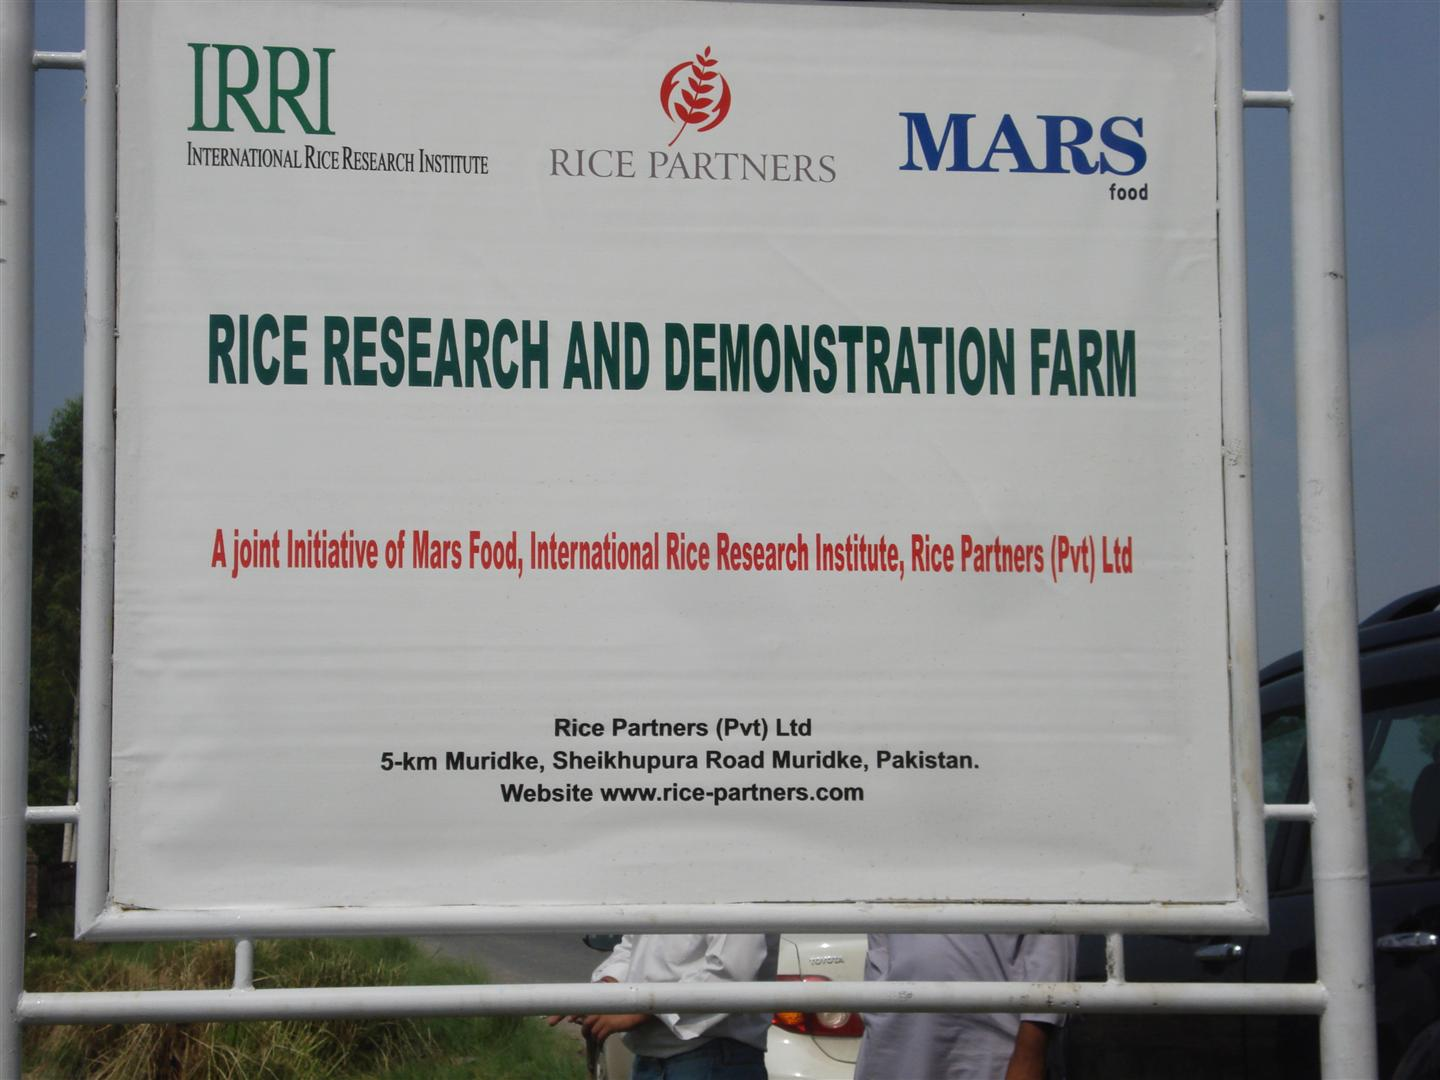 Mars sponsored Rice Research and Demo Farm